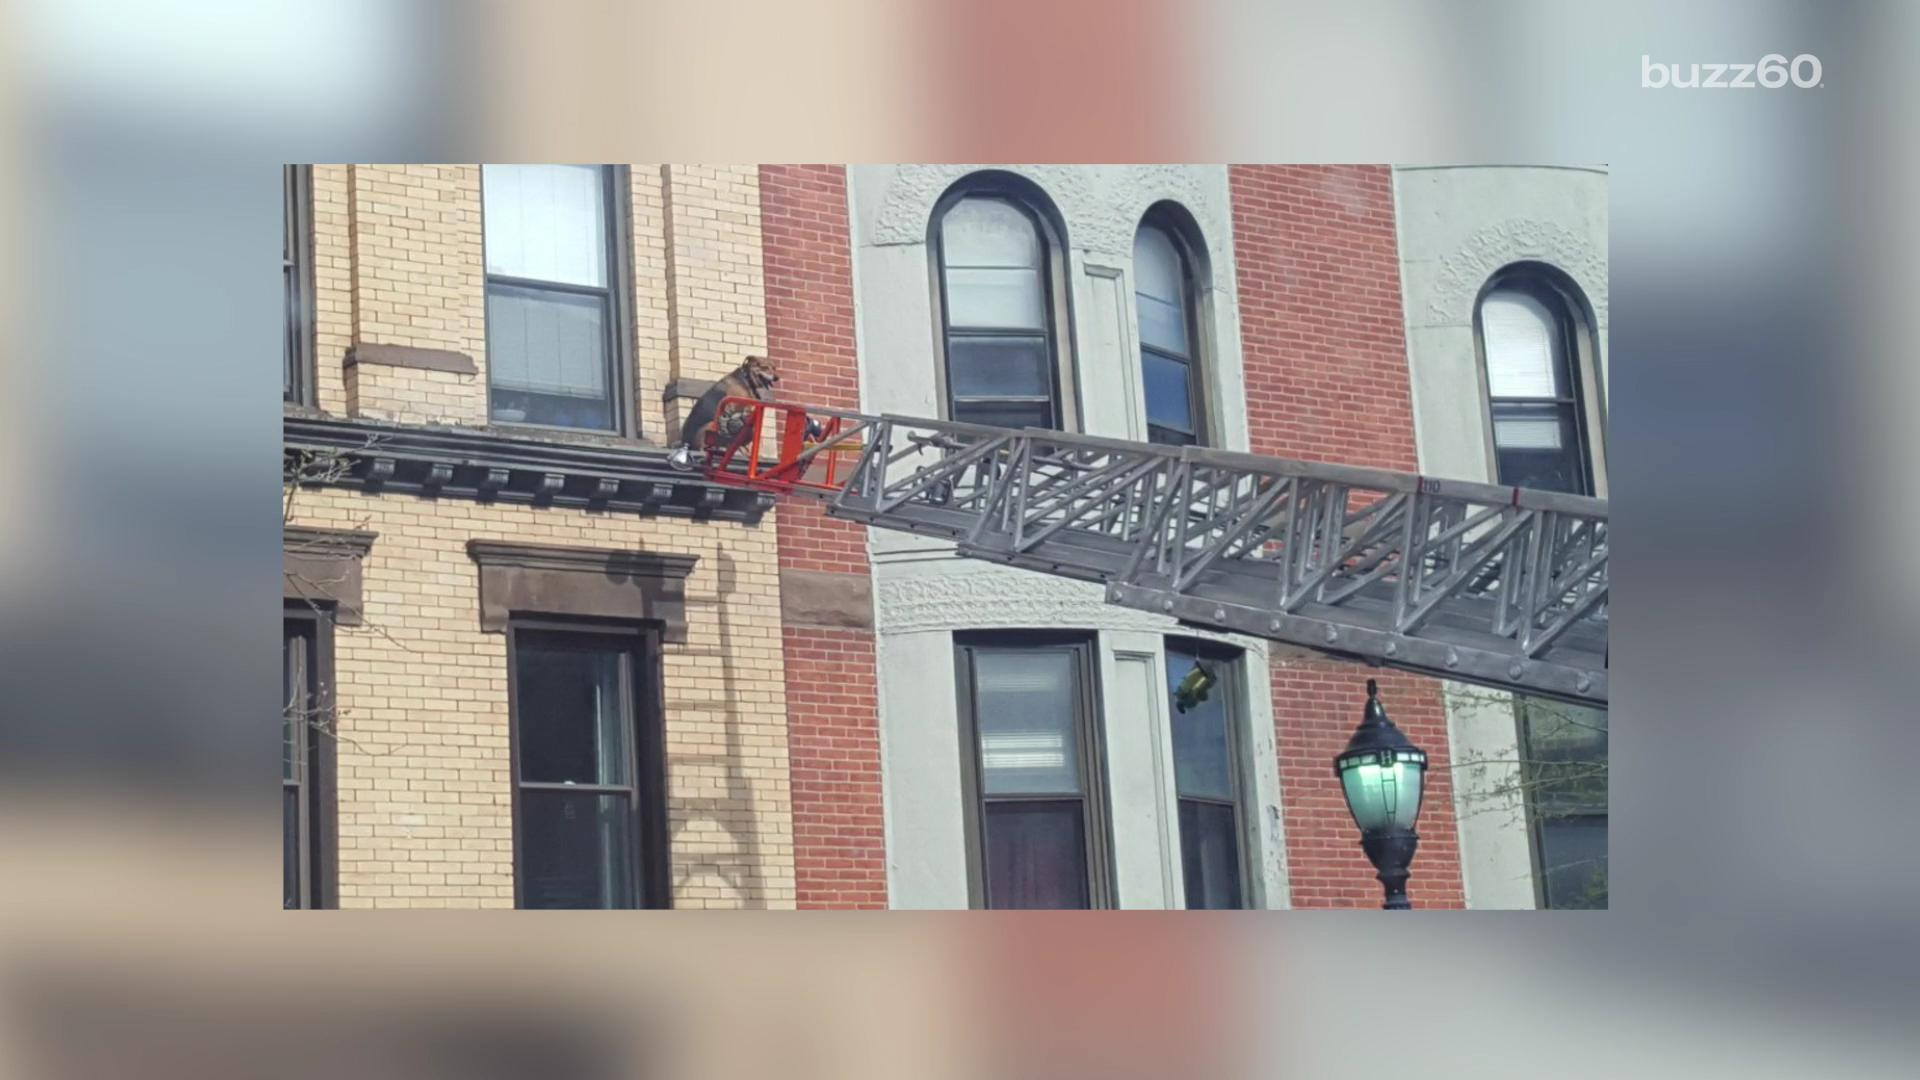 Dog rescued after sunbathing on 3rd story window ledge